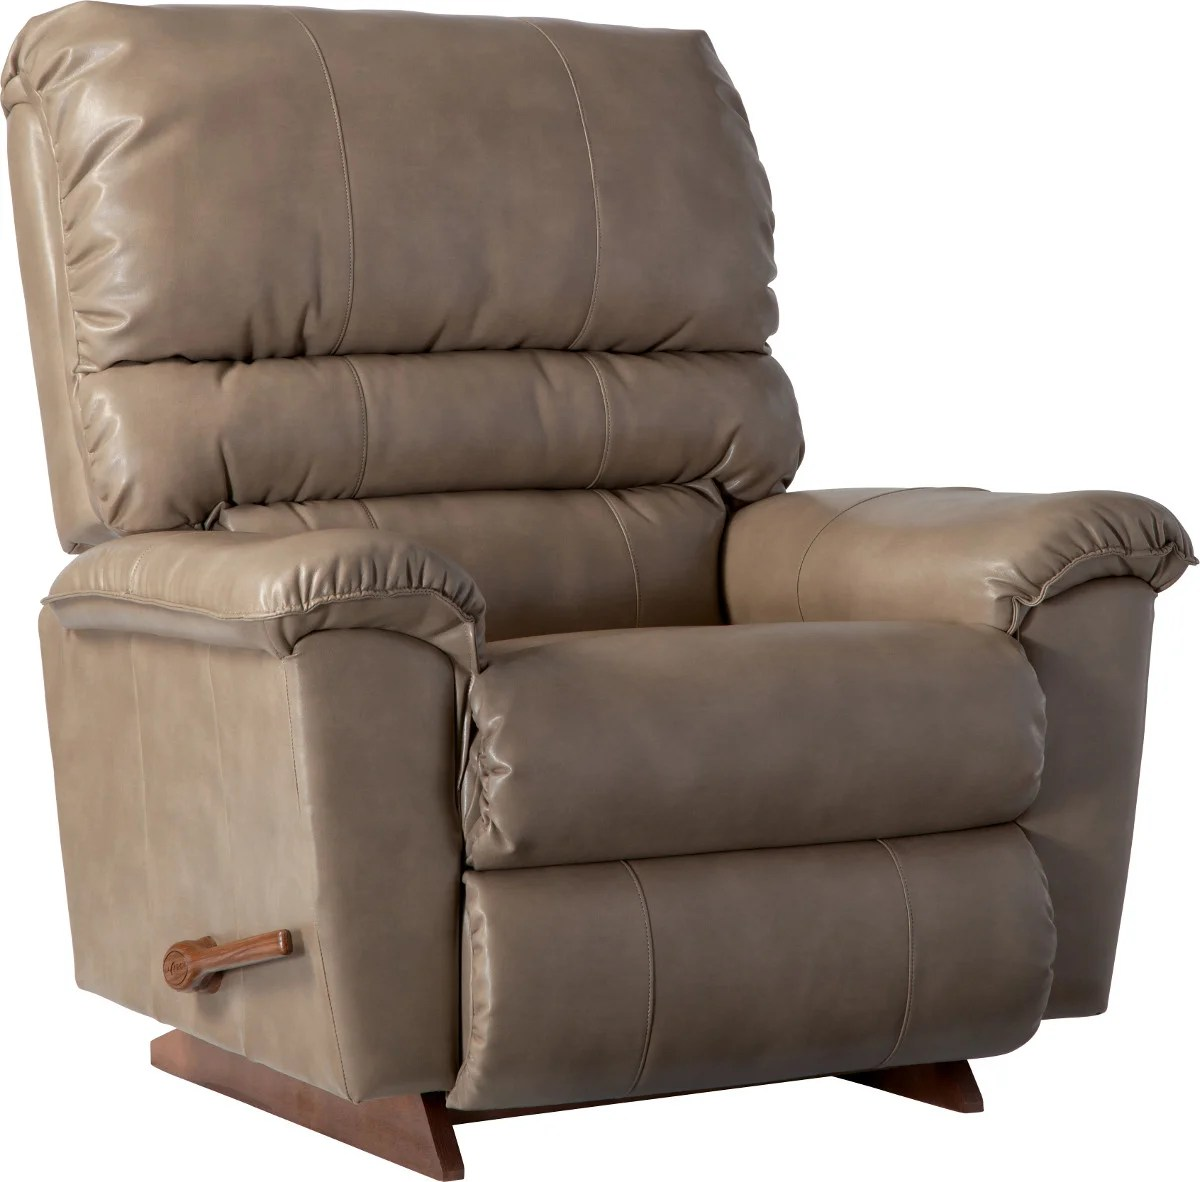 Z Chair For Sale La Z Boy Recliners Sale Bing Images